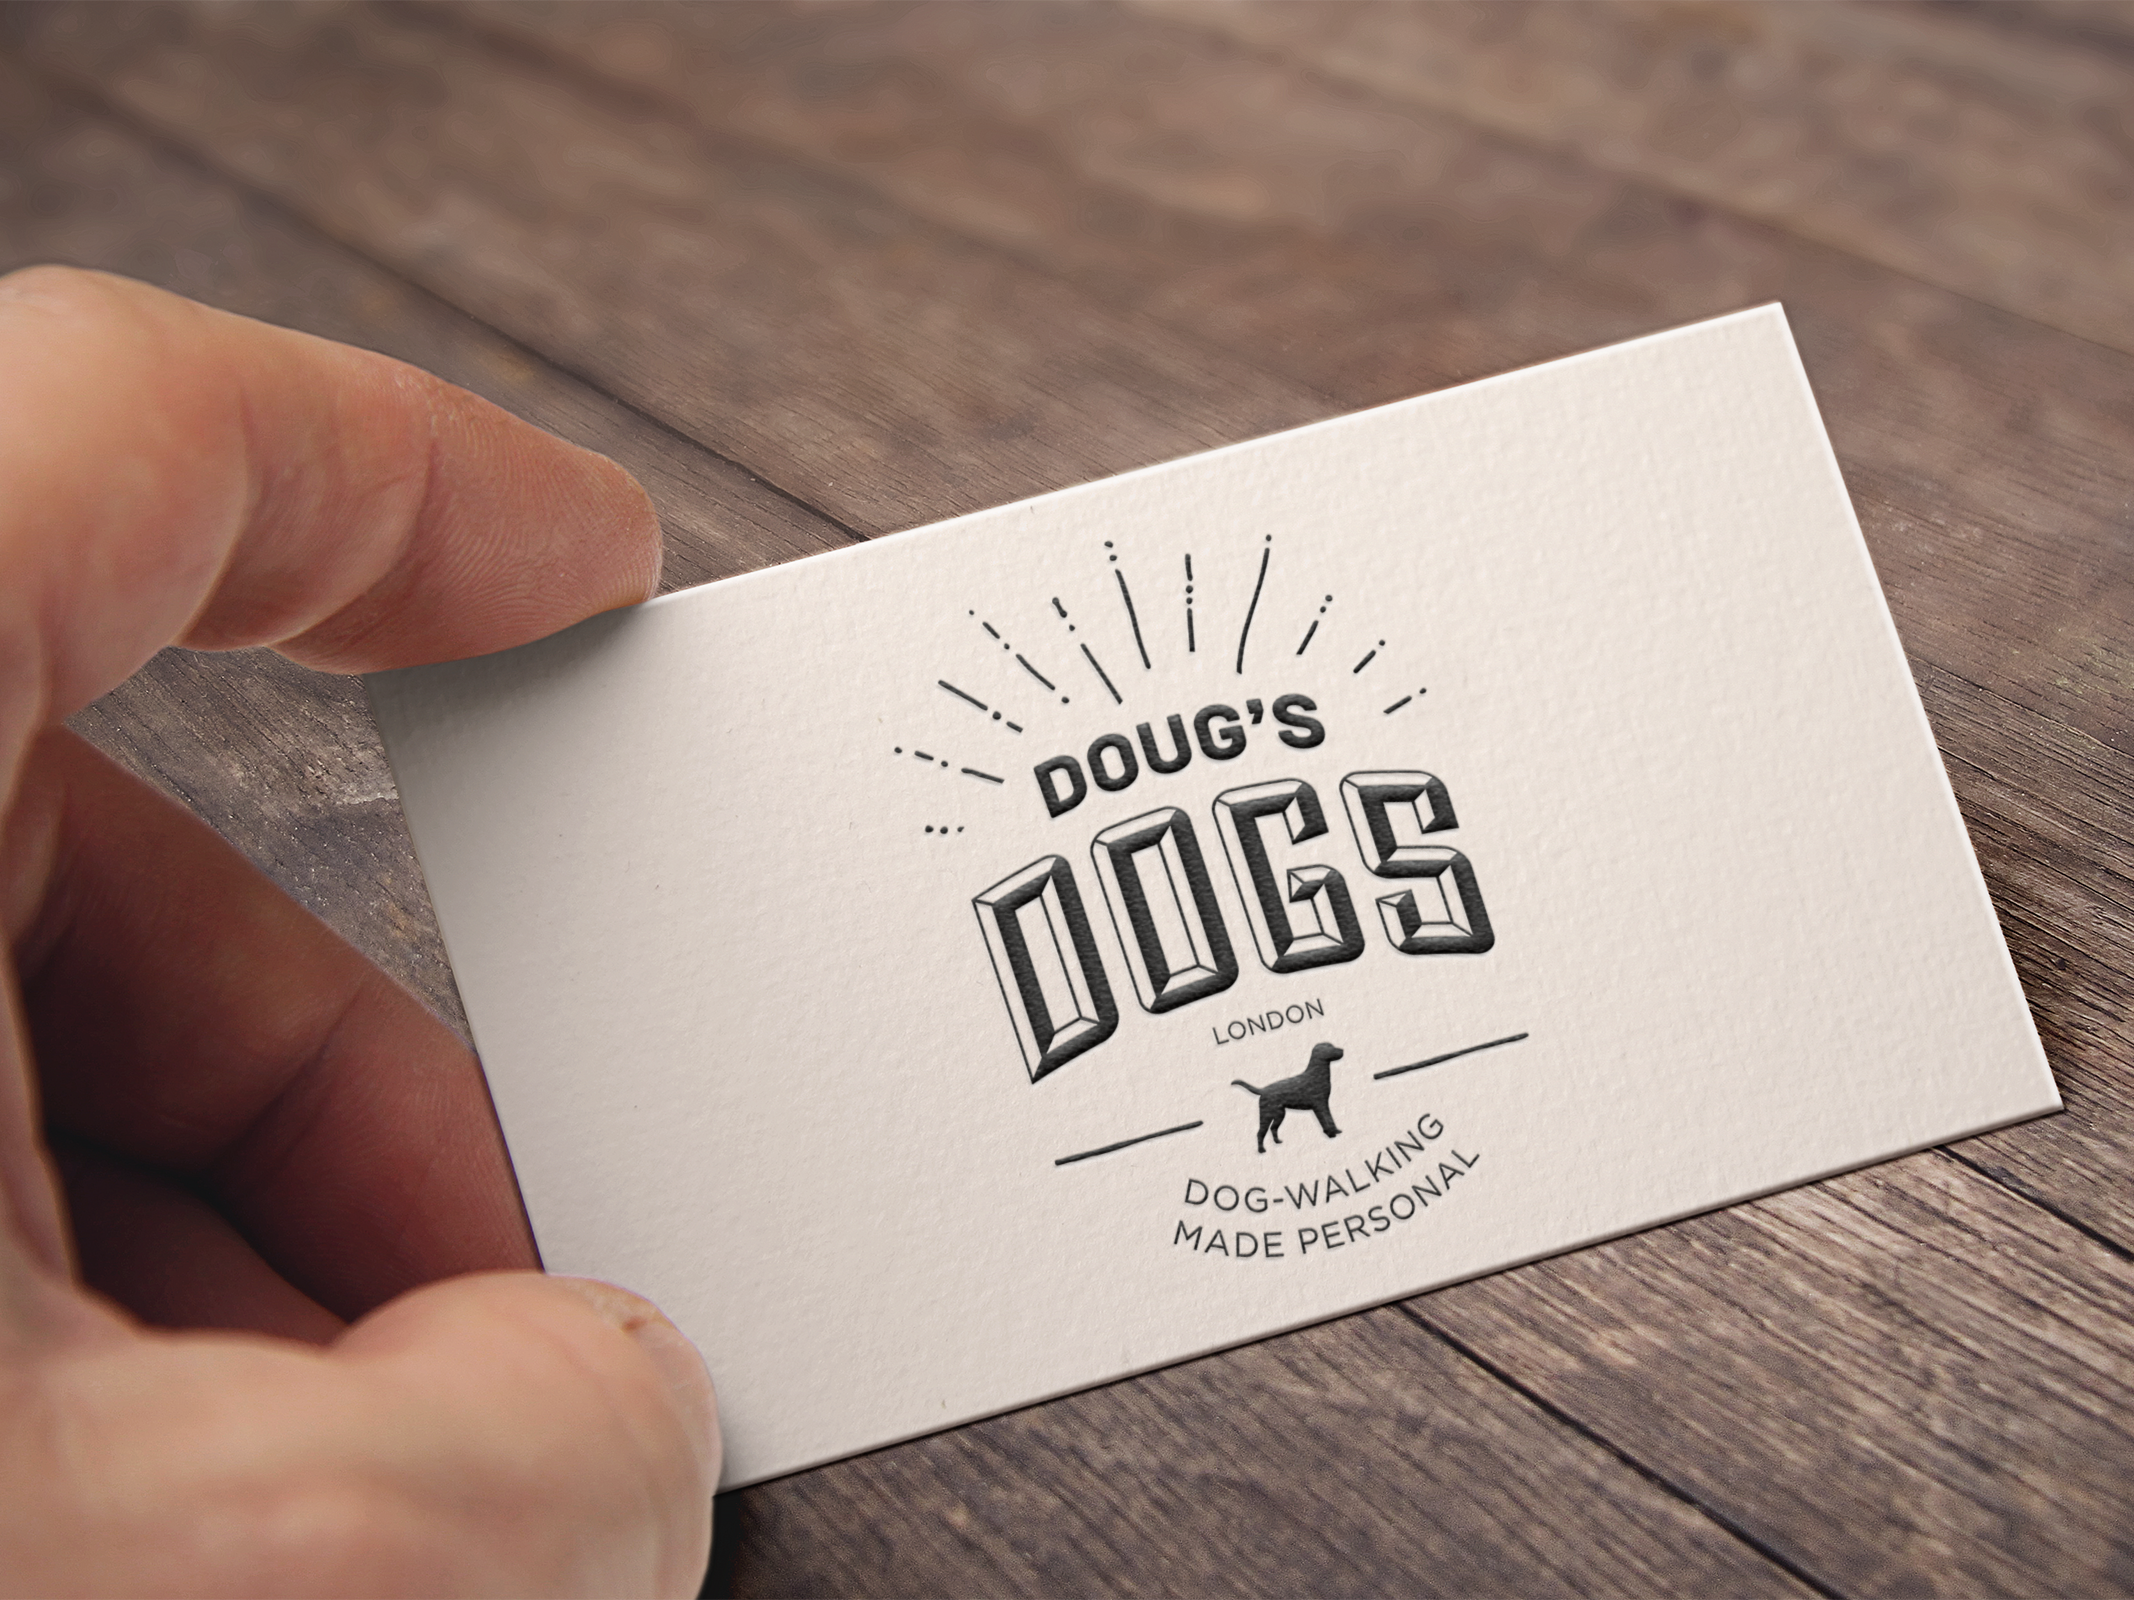 Image of Doug's Dogs business card